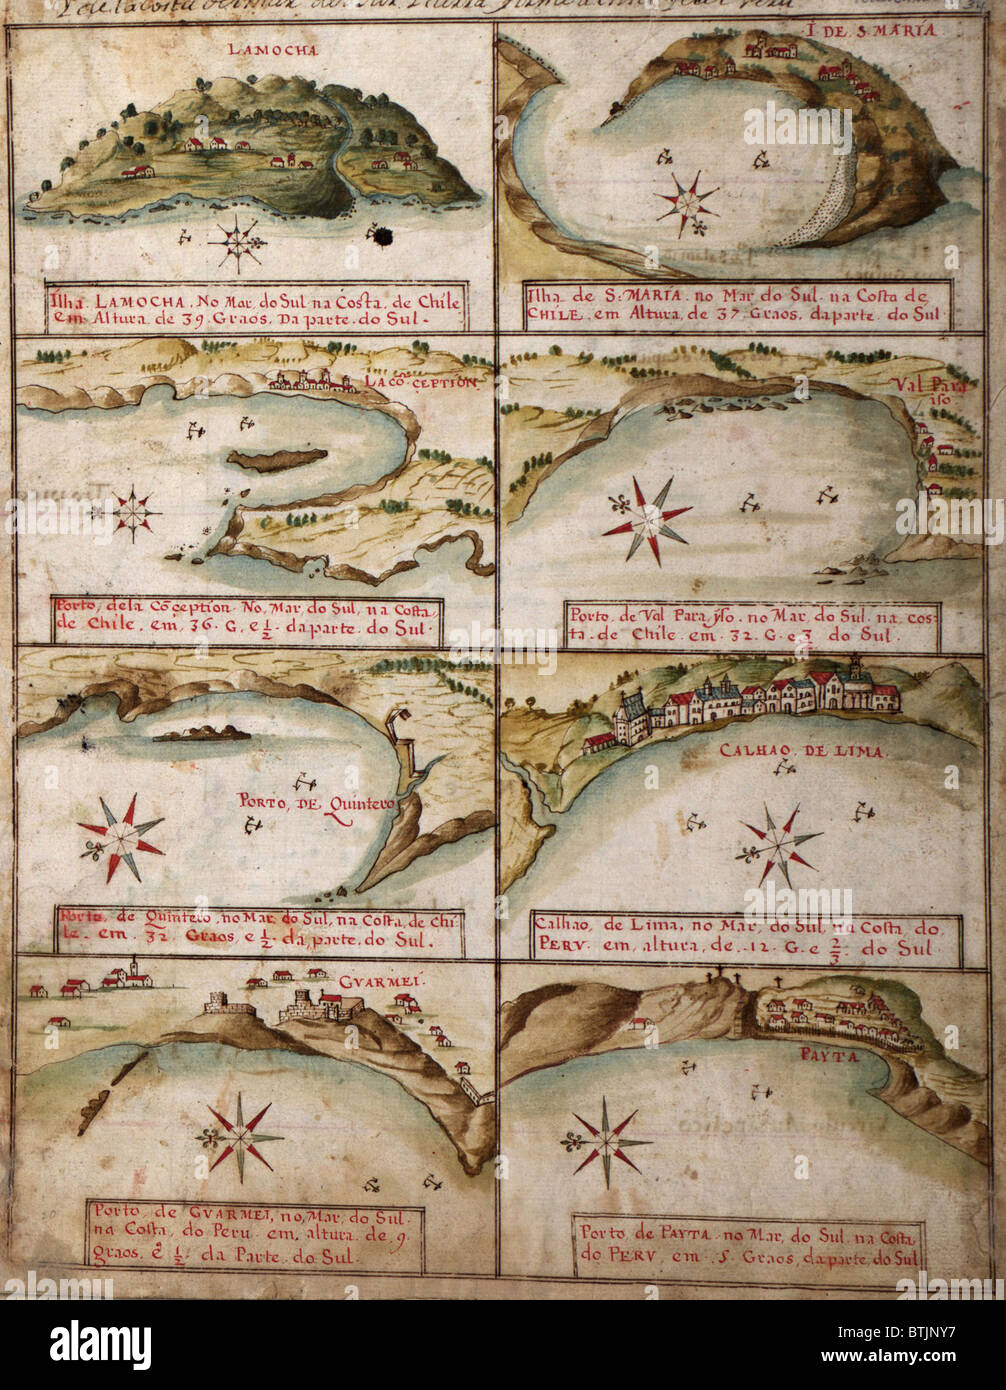 1630 views of ports of Peru and Chile, including Lima,Peru and Concepcion,Chile. - Stock Image